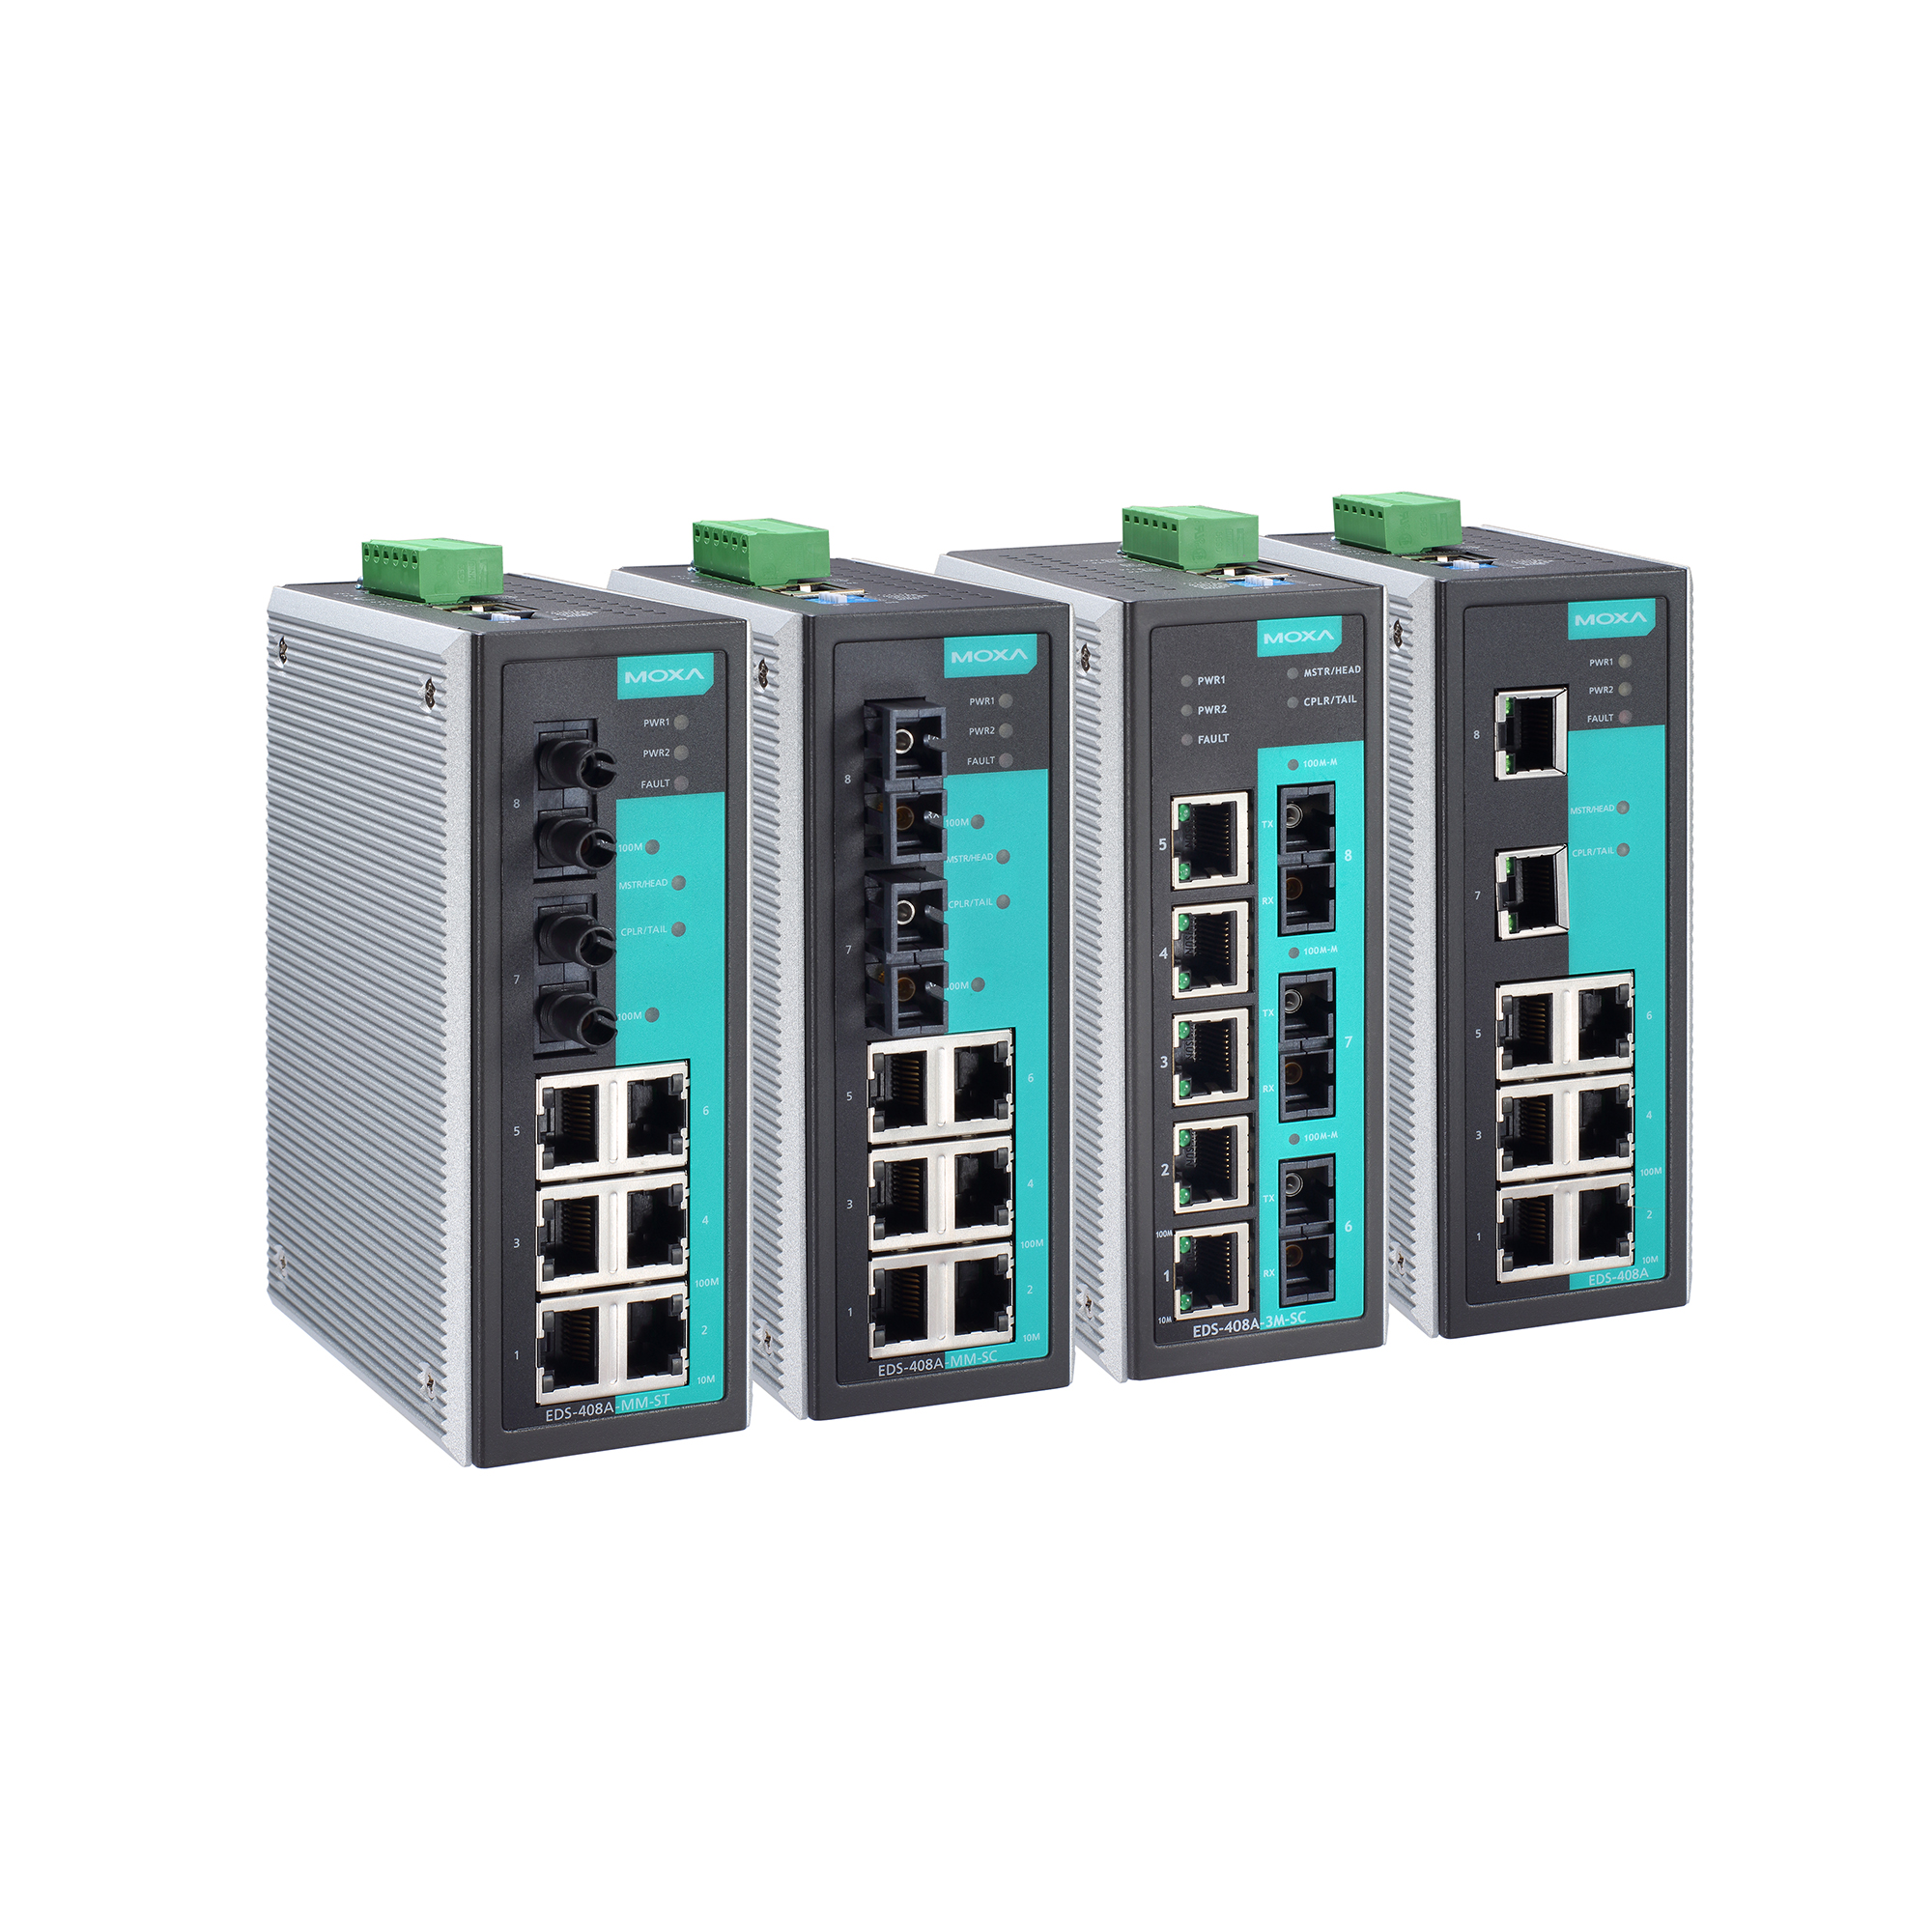 Moxa Switch Eds 408a Series Layer 2 Managed Switches Moxa